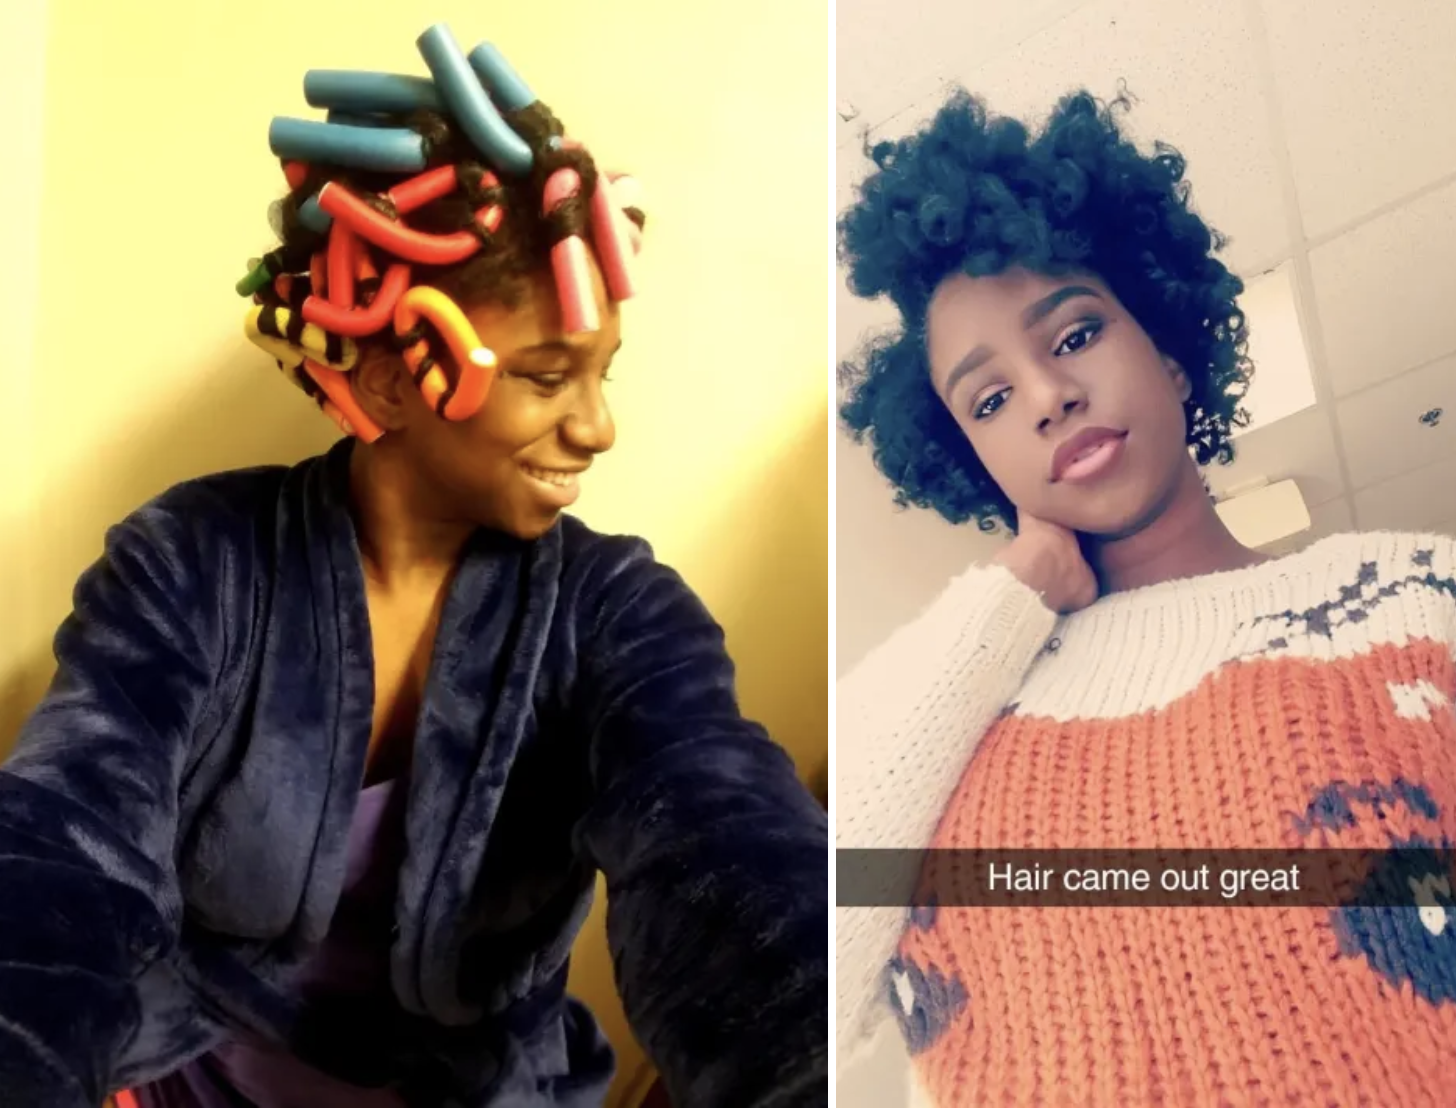 Left: A reviewer with the foam rods in their hair / right: The same reviewer with voluminous curls in their hair after use (type 4C hair)